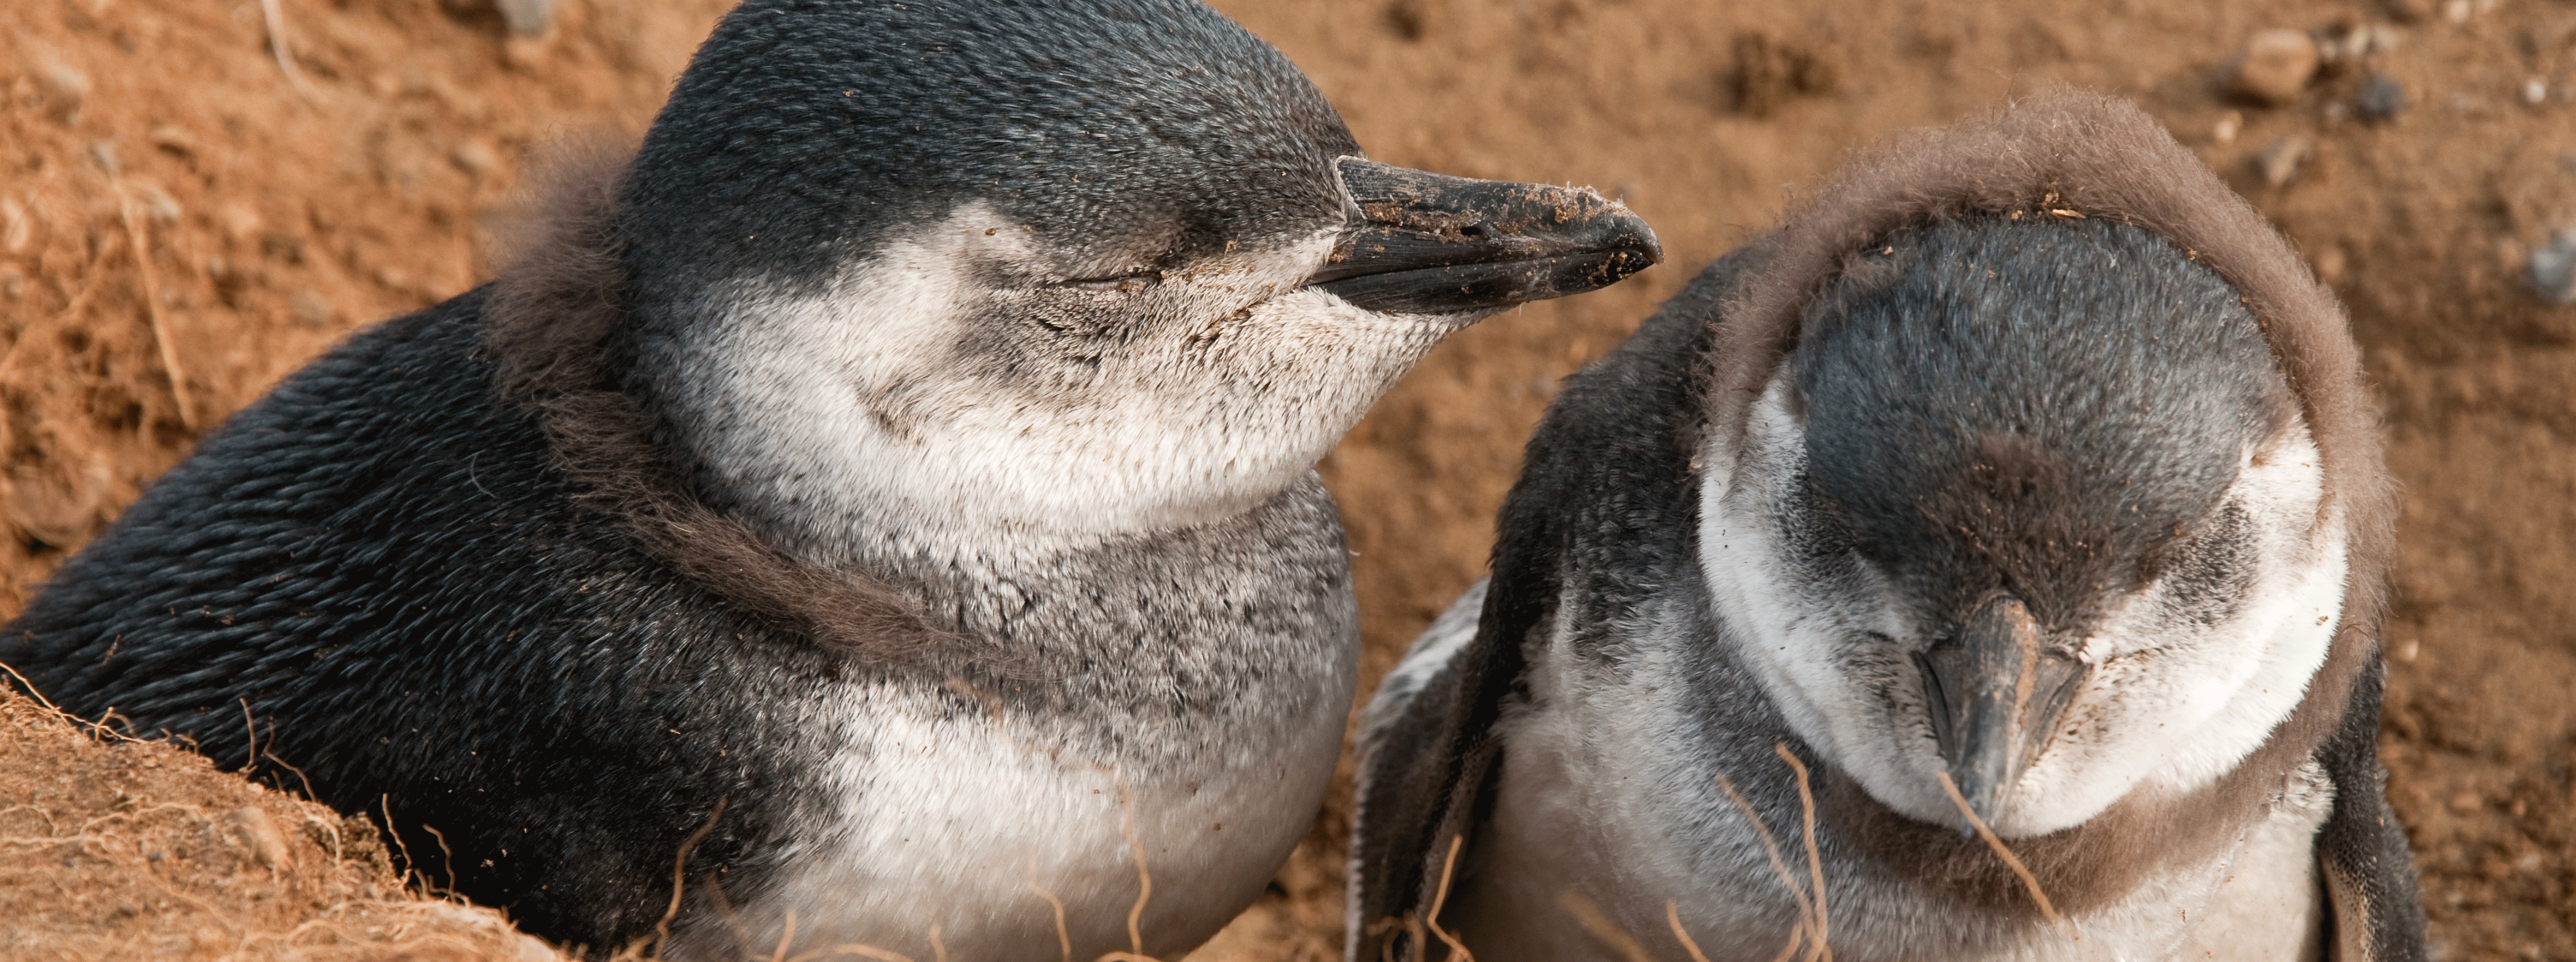 /resource/Images/southamerica/chile/headerimage/Baby-Penguins-at-Isla-Magdalena,-Patagonia-Chile.png